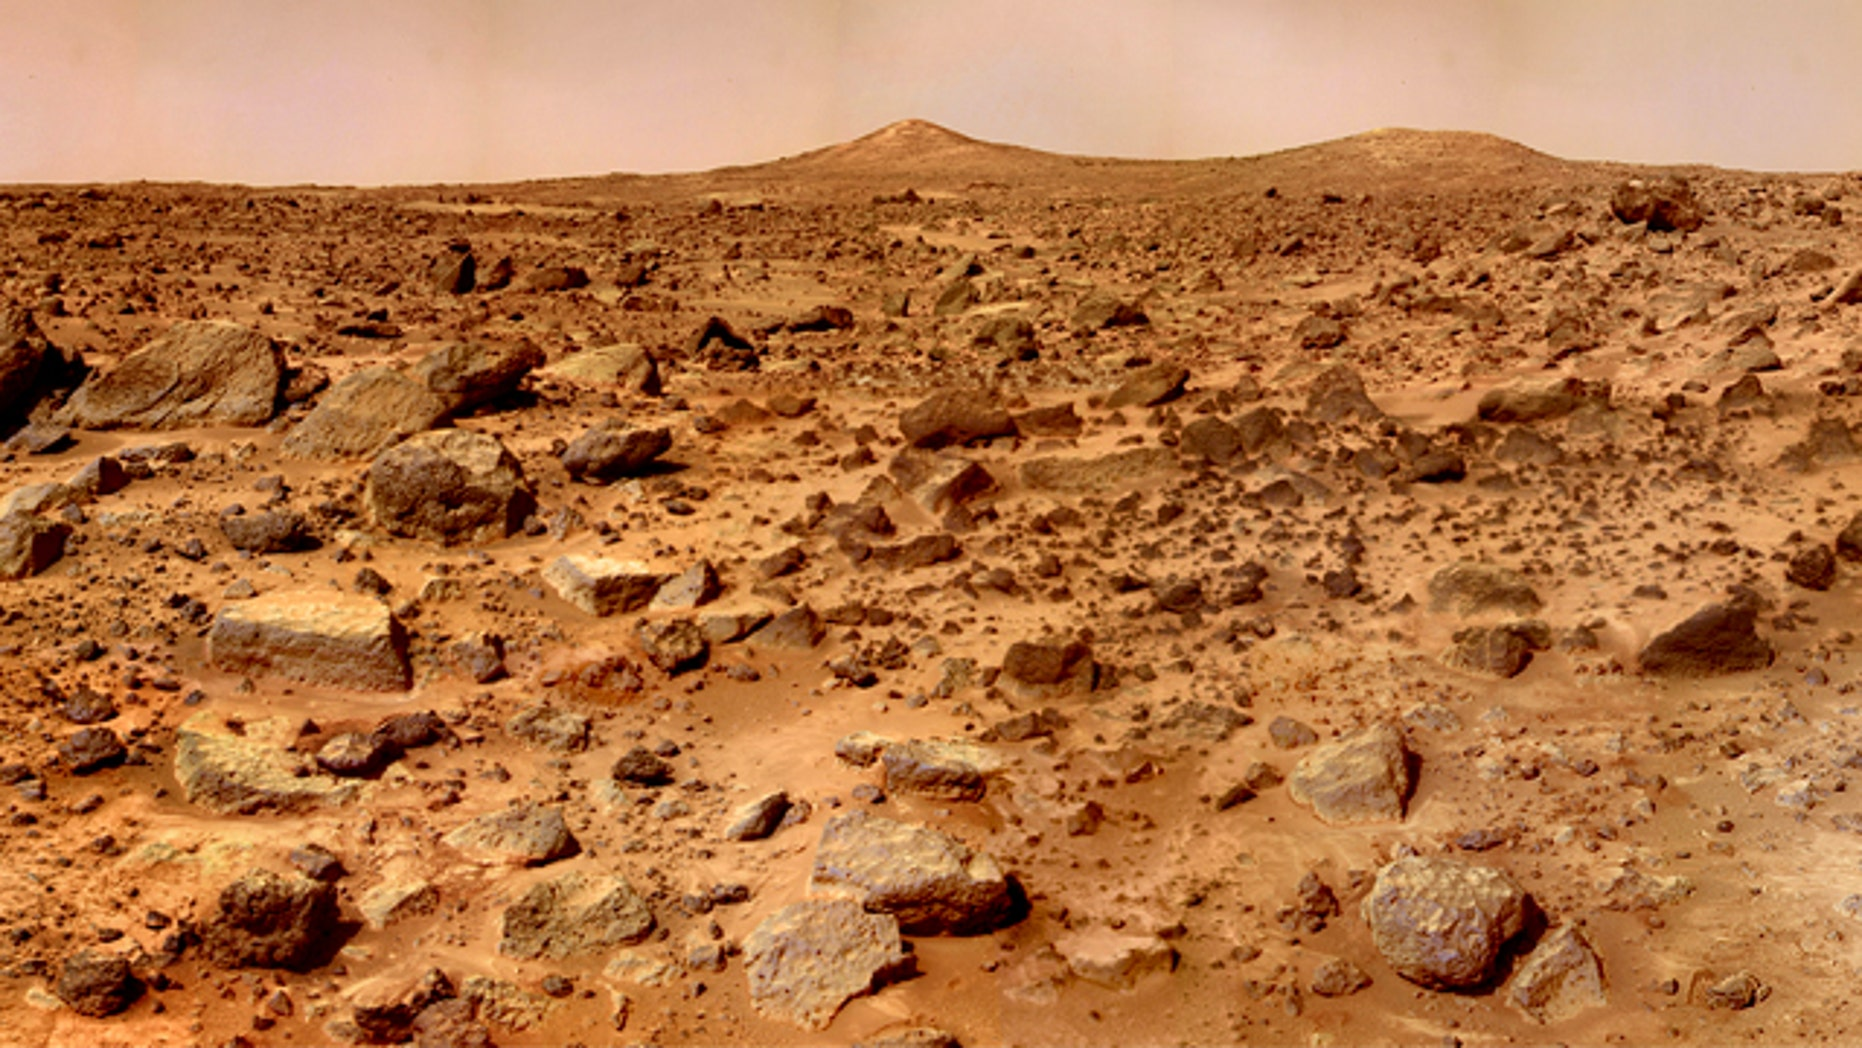 NASA's 1997 Pathfinder mission to Mars returned this stunning image of the planet's rocky red landscape.